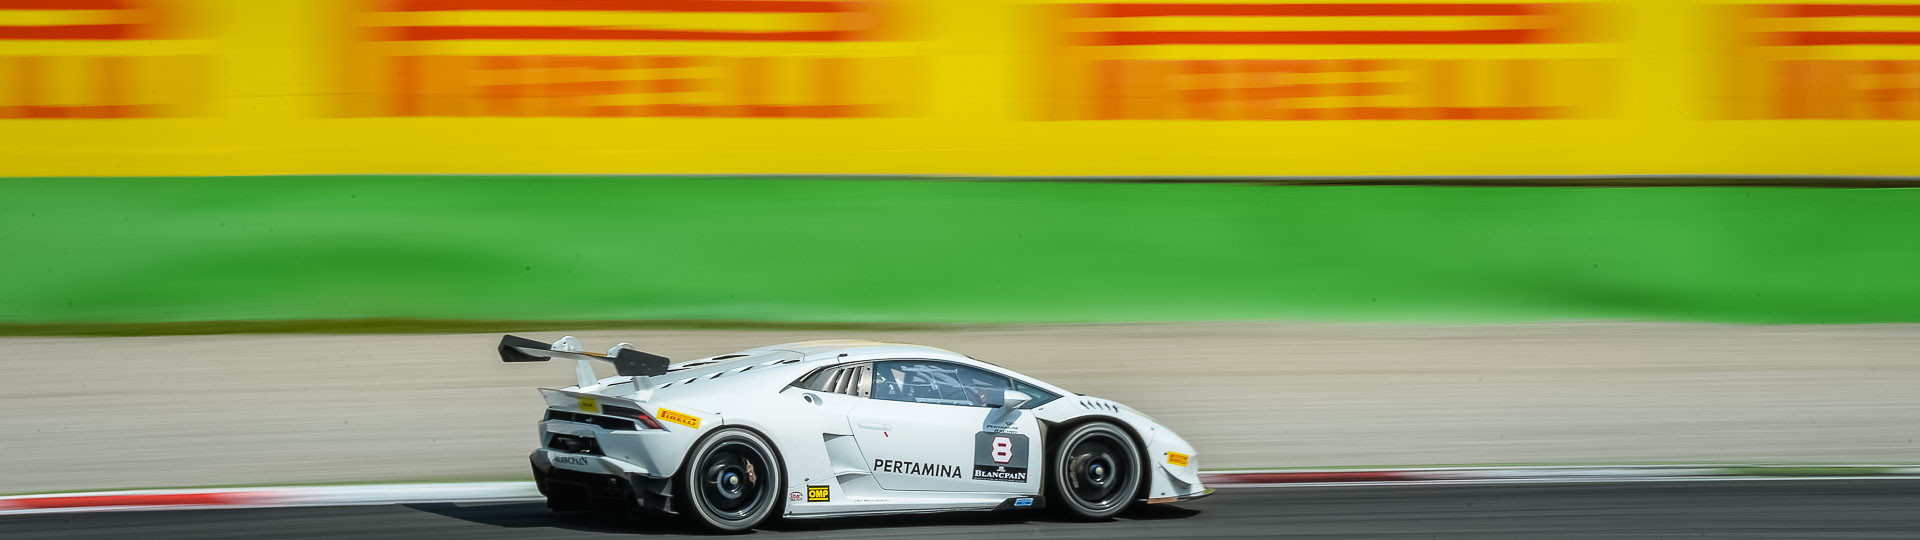 Patrick Kujala (Bonaldi Motorsport) wins for the seventh time in Nürburgring and stakes a claim on the Lamborghini Blancpain Super Trofeo Europe.